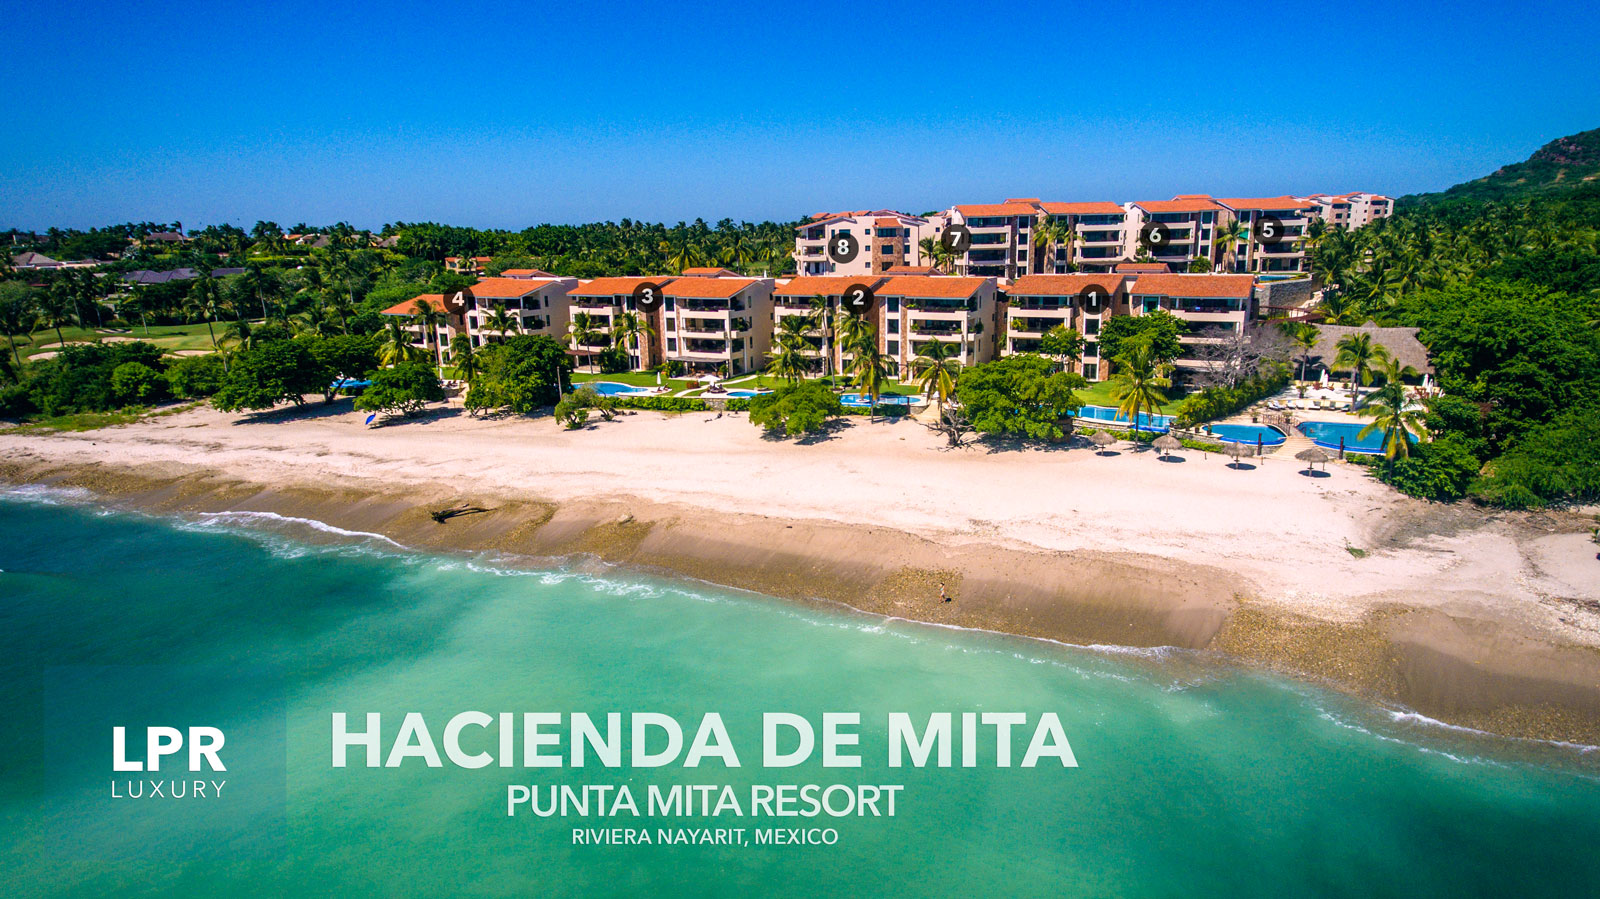 Hacienda de Mita - Punta Mita Resort beachfront condominiums for sale and rent. Riviera Nayarit, Mexico